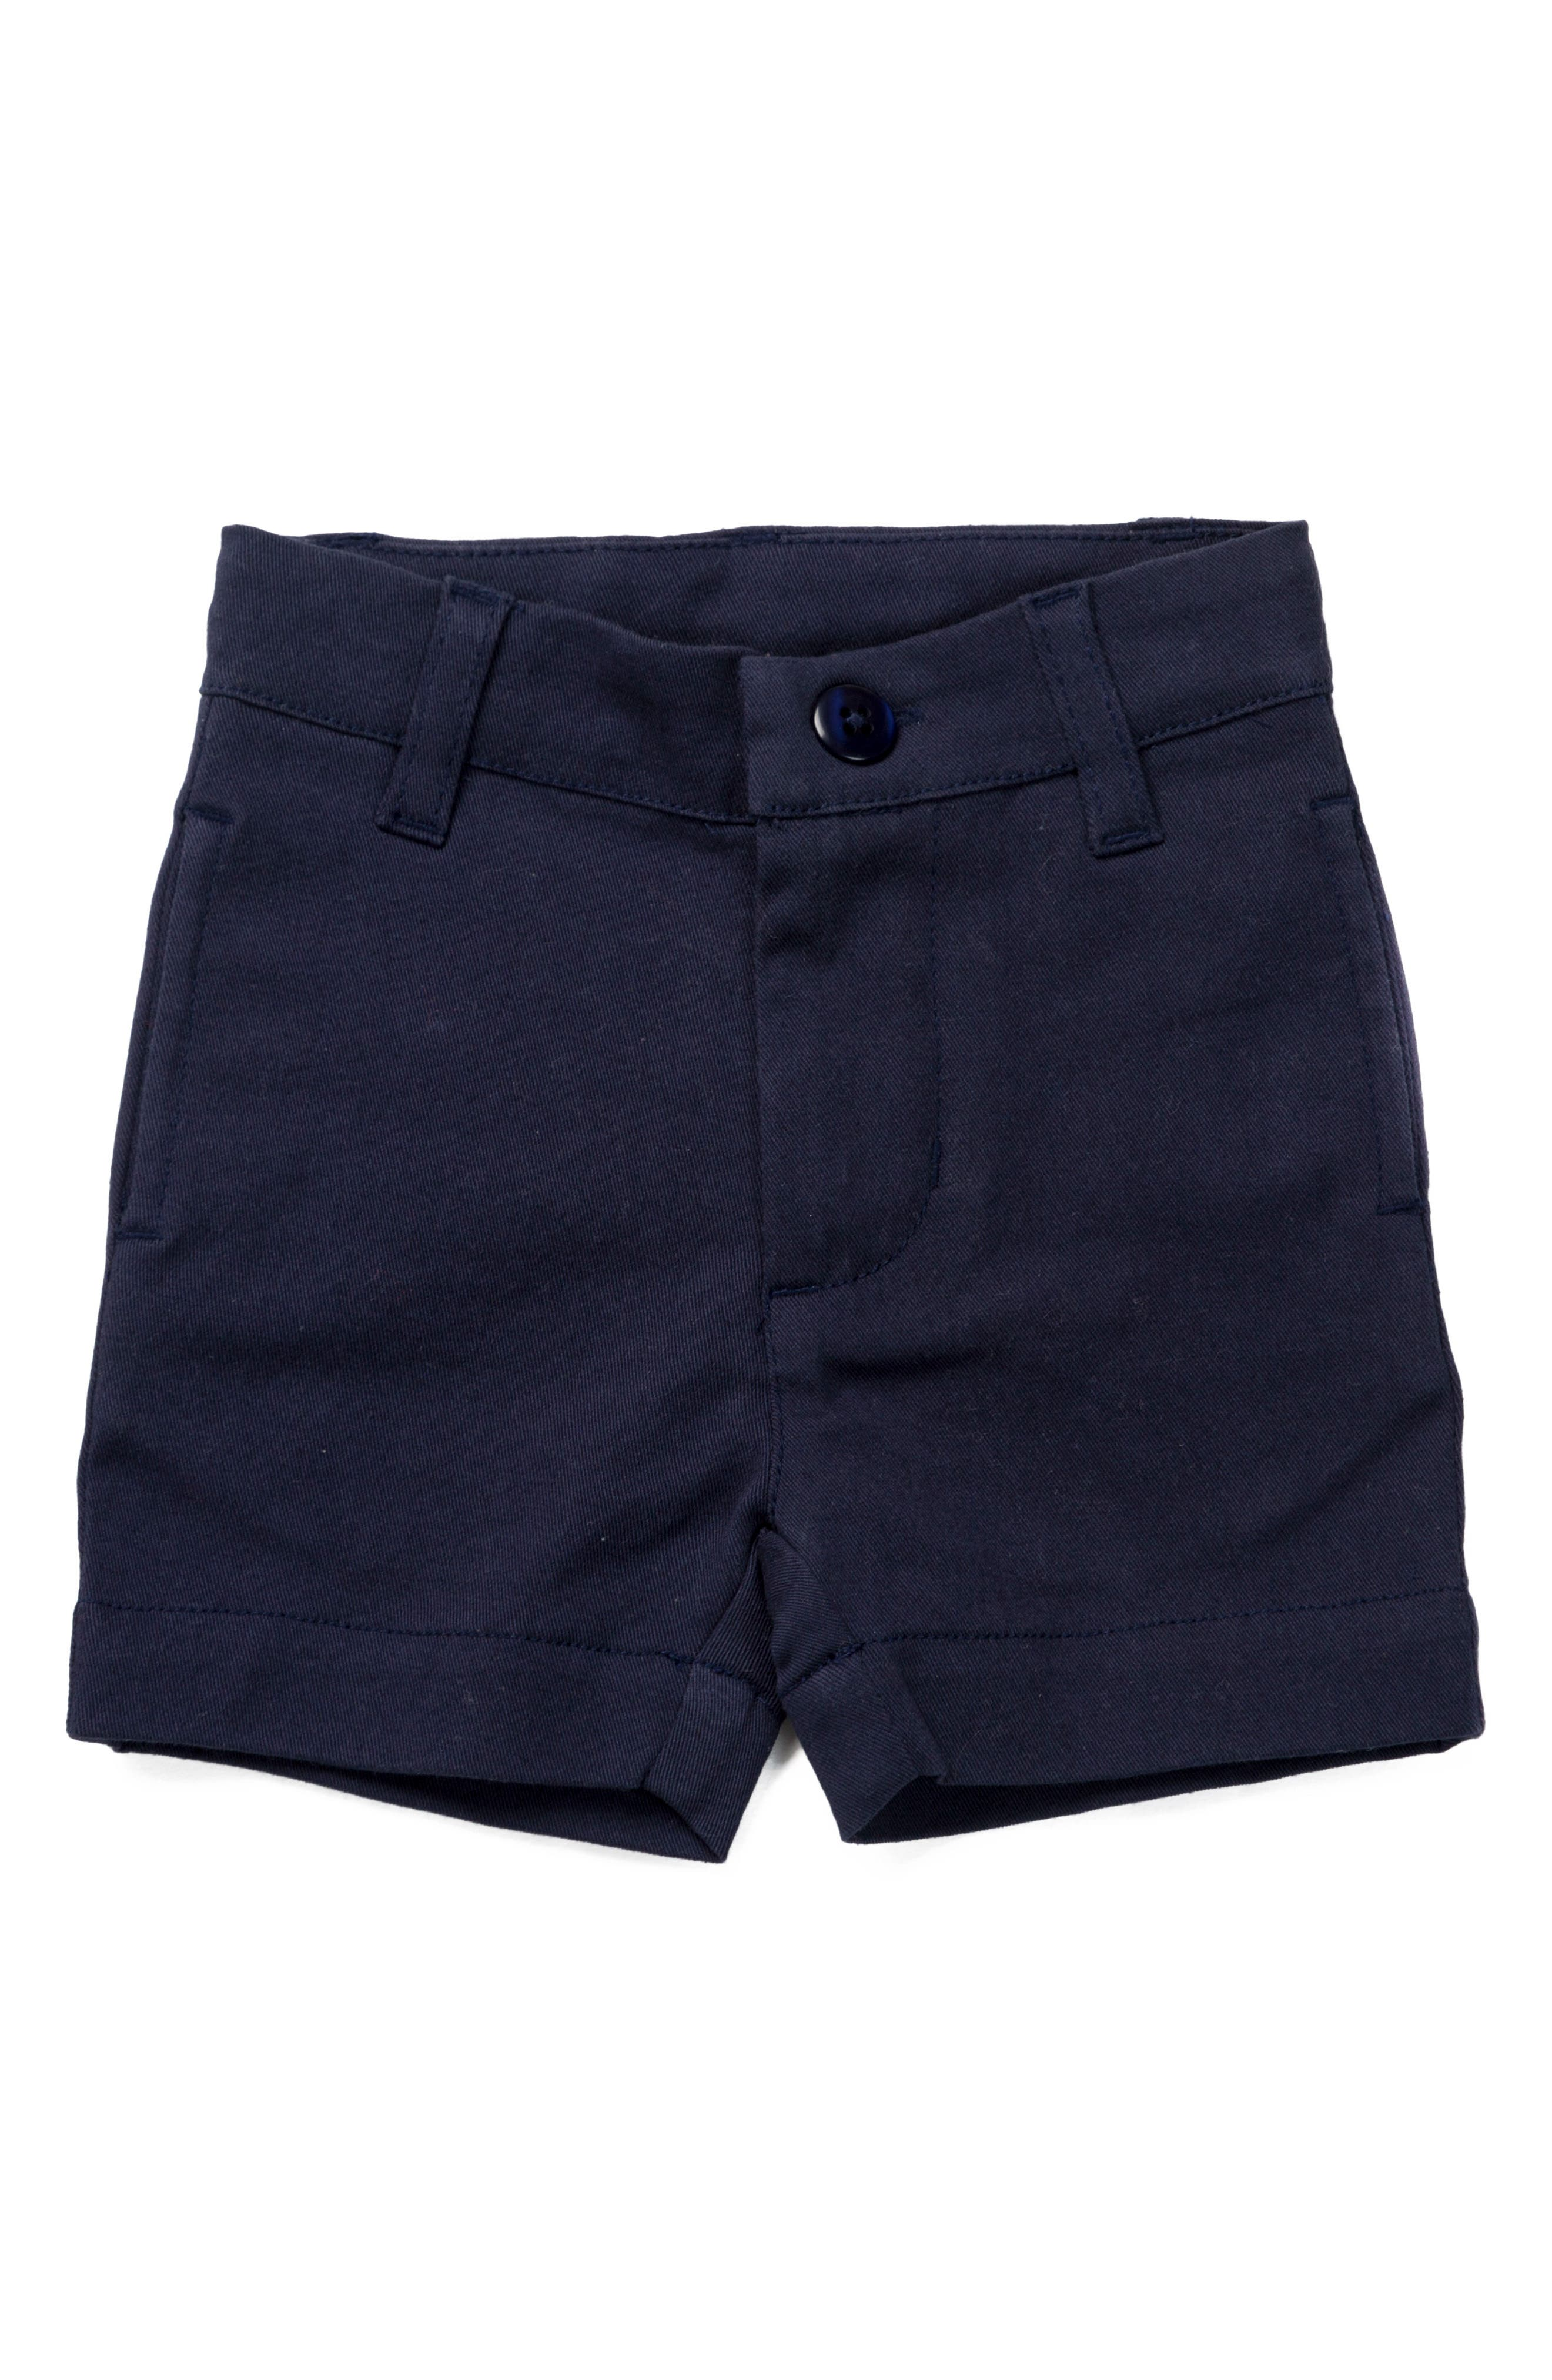 Old Sport Shorts,                         Main,                         color,